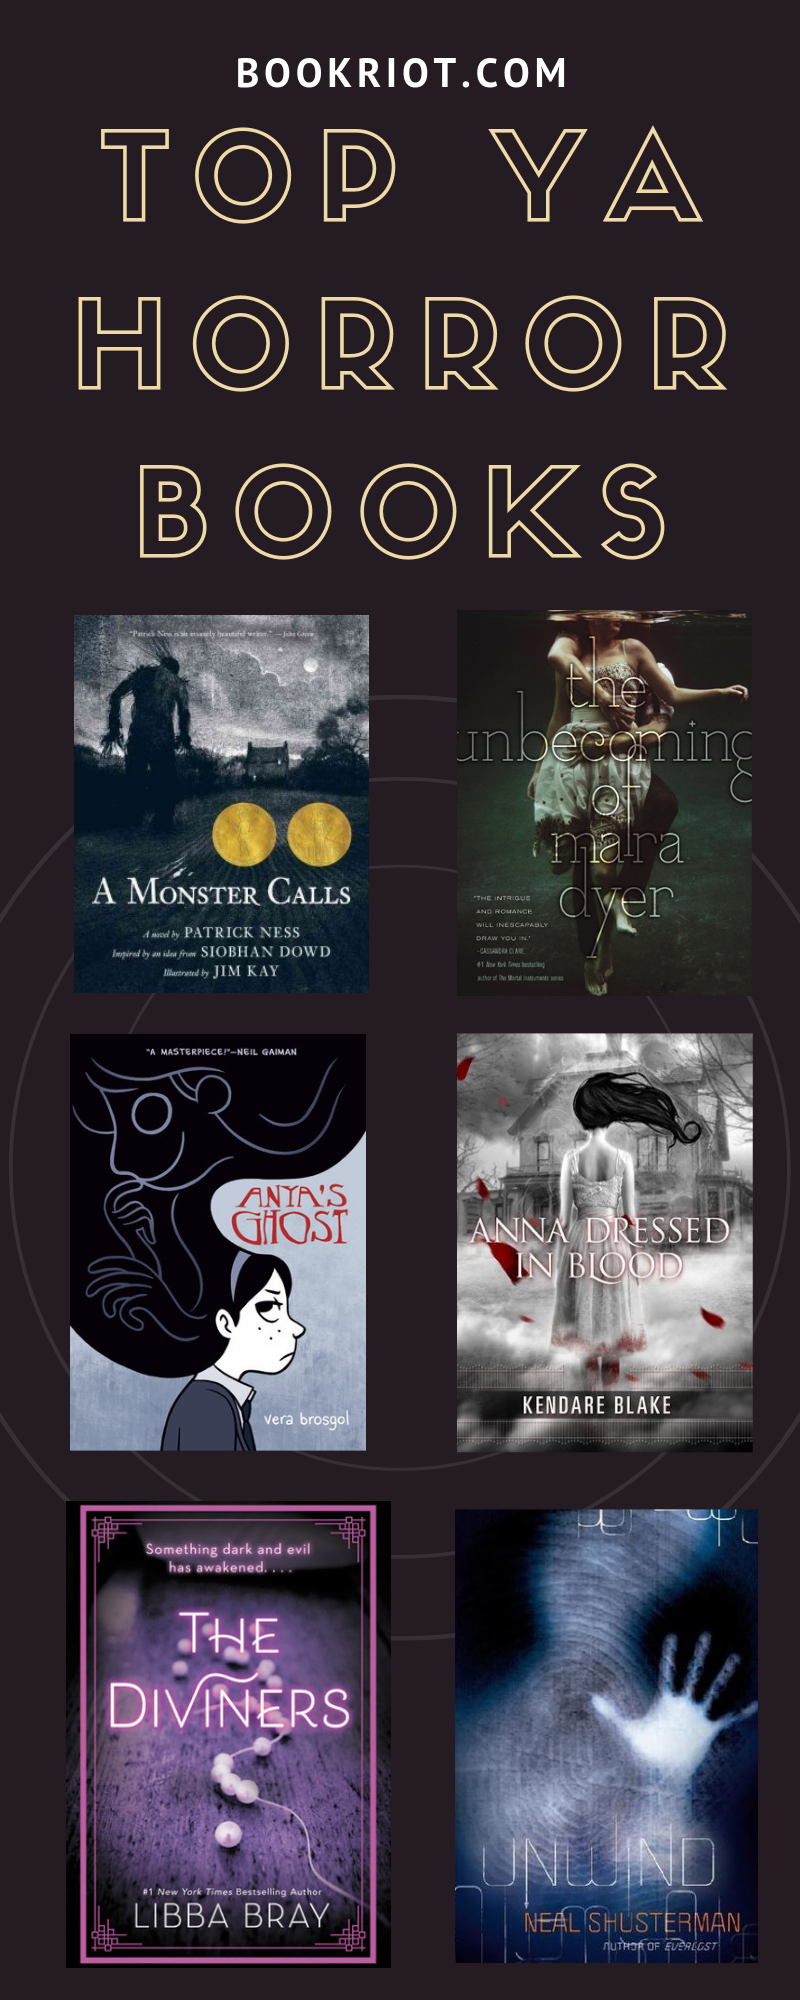 These are the top YA horror books according to Goodreads users. horror books | scary books | ya books | ya horror books | YA book lists | book lists | goodreads lists | top horror books | top ya horror | top books on goodreads | popular books on goodreads